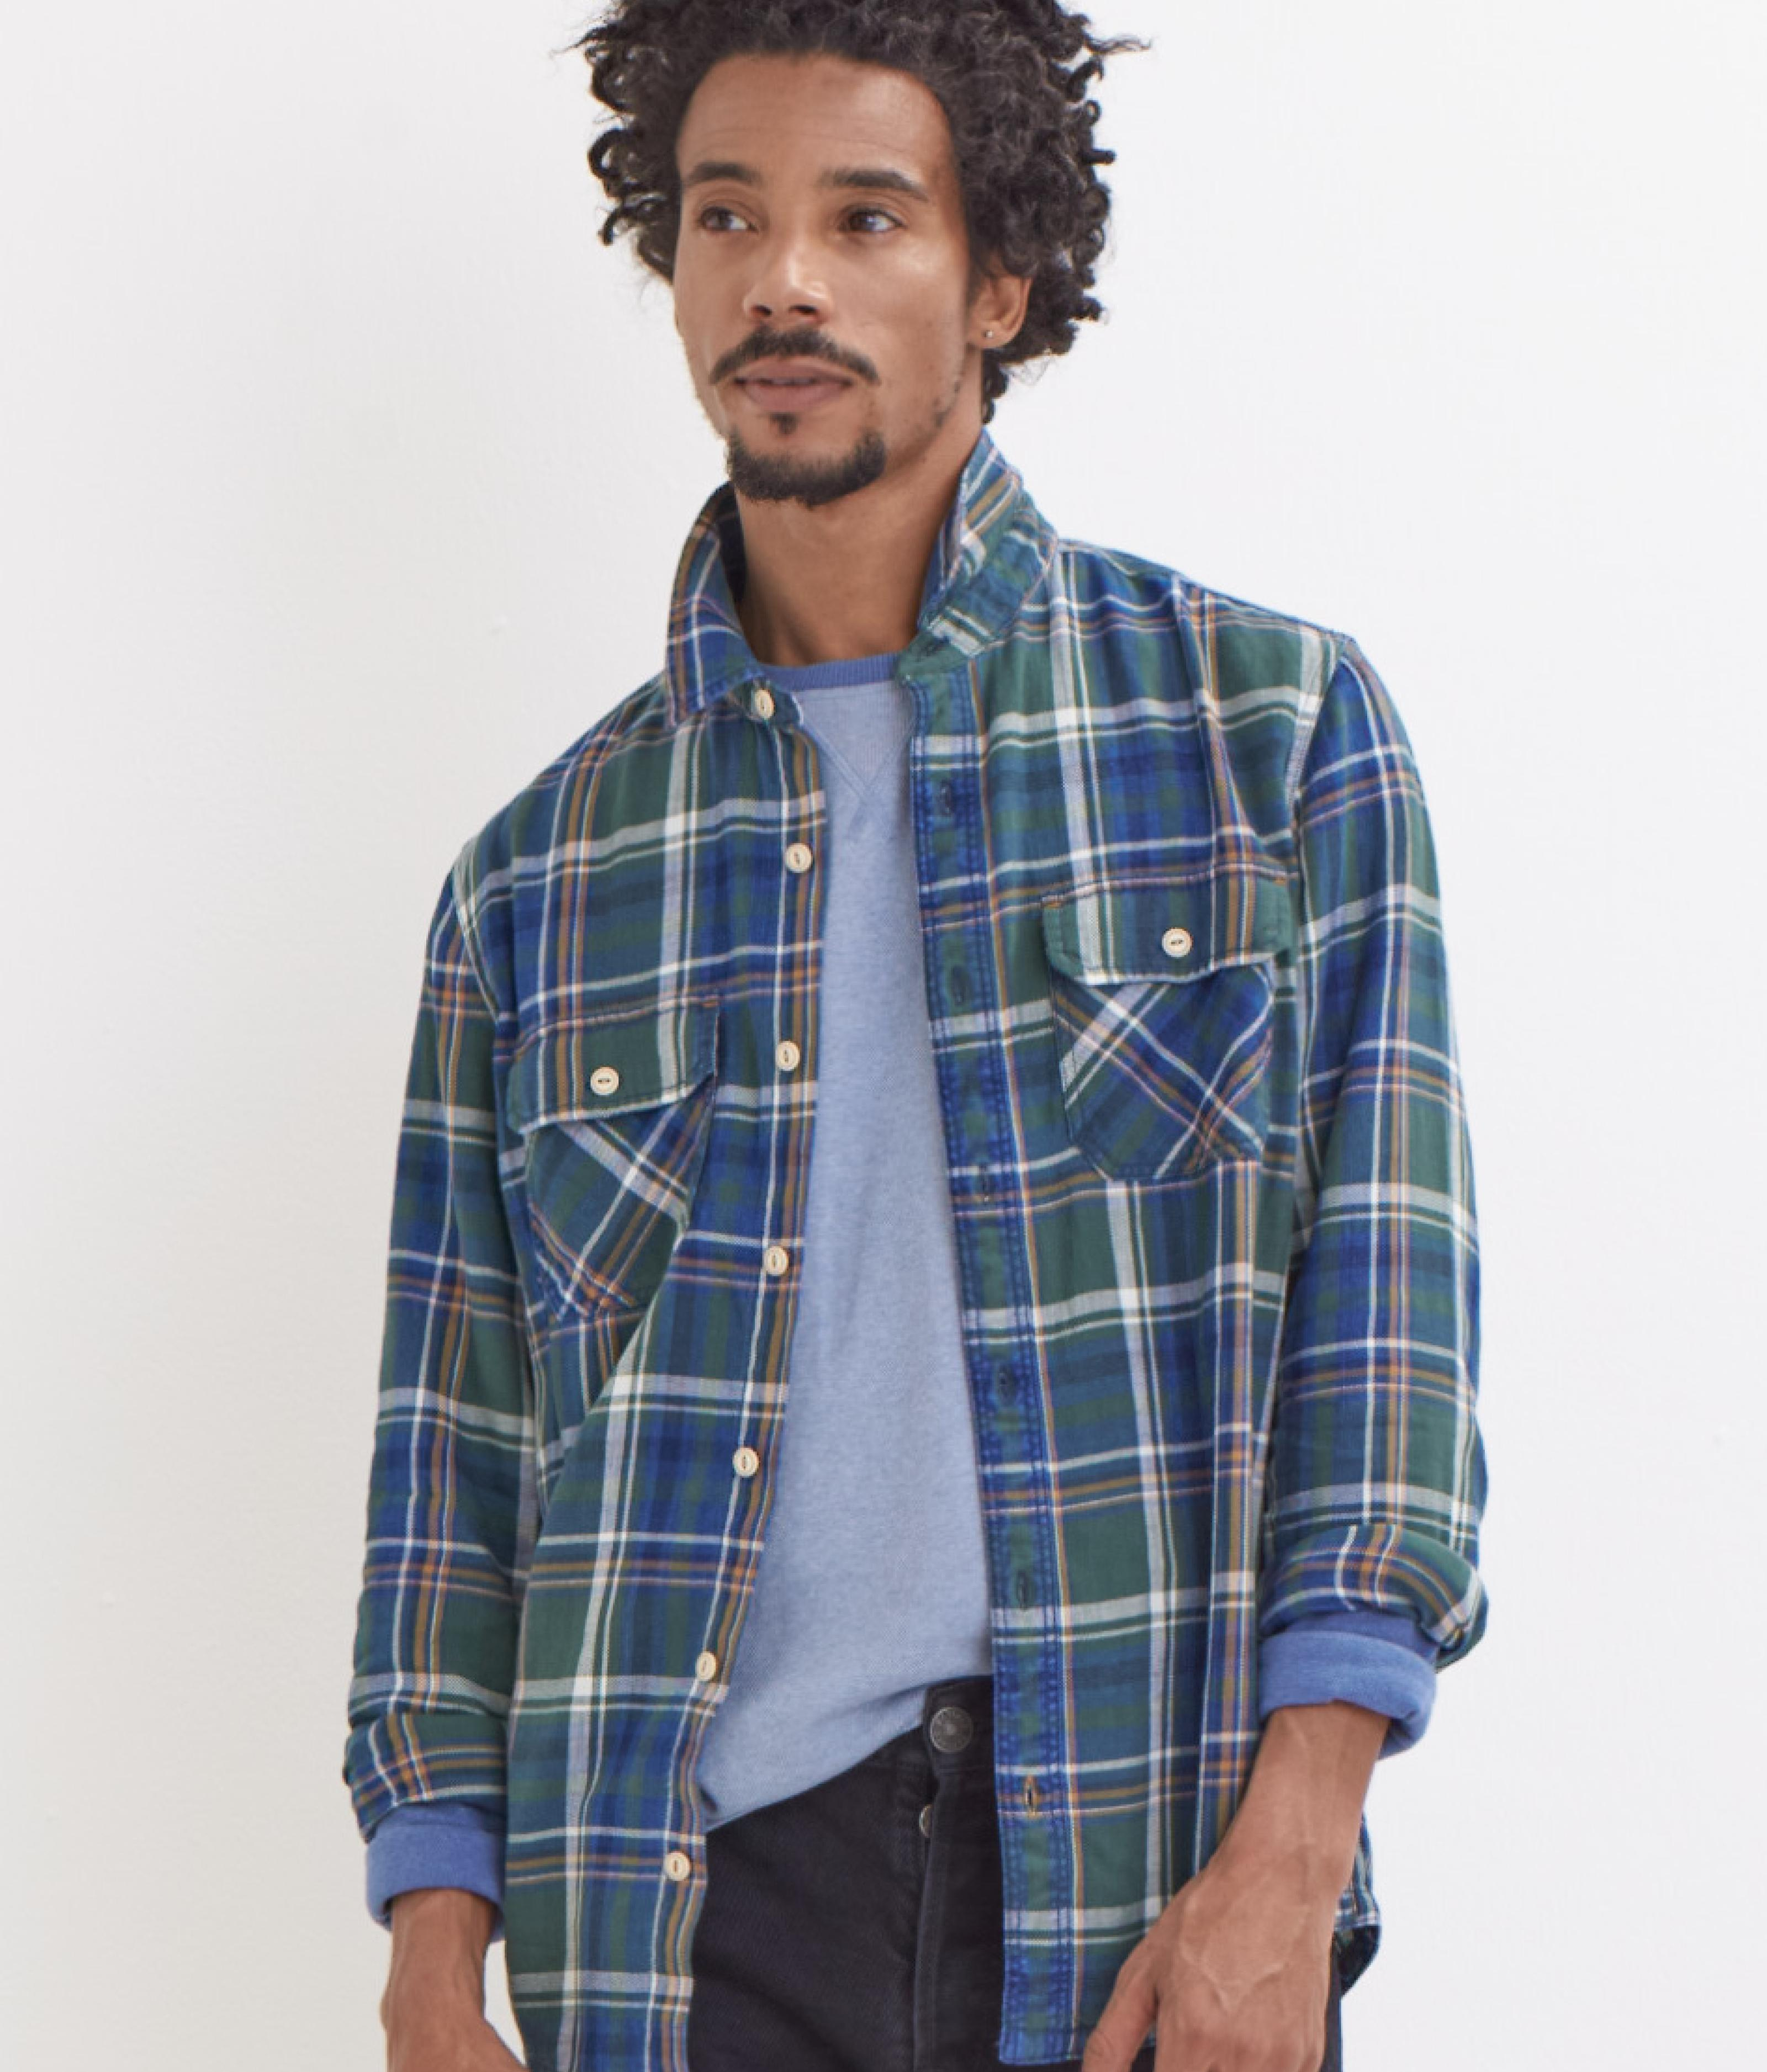 A male model wearing a blue and green check shirt.